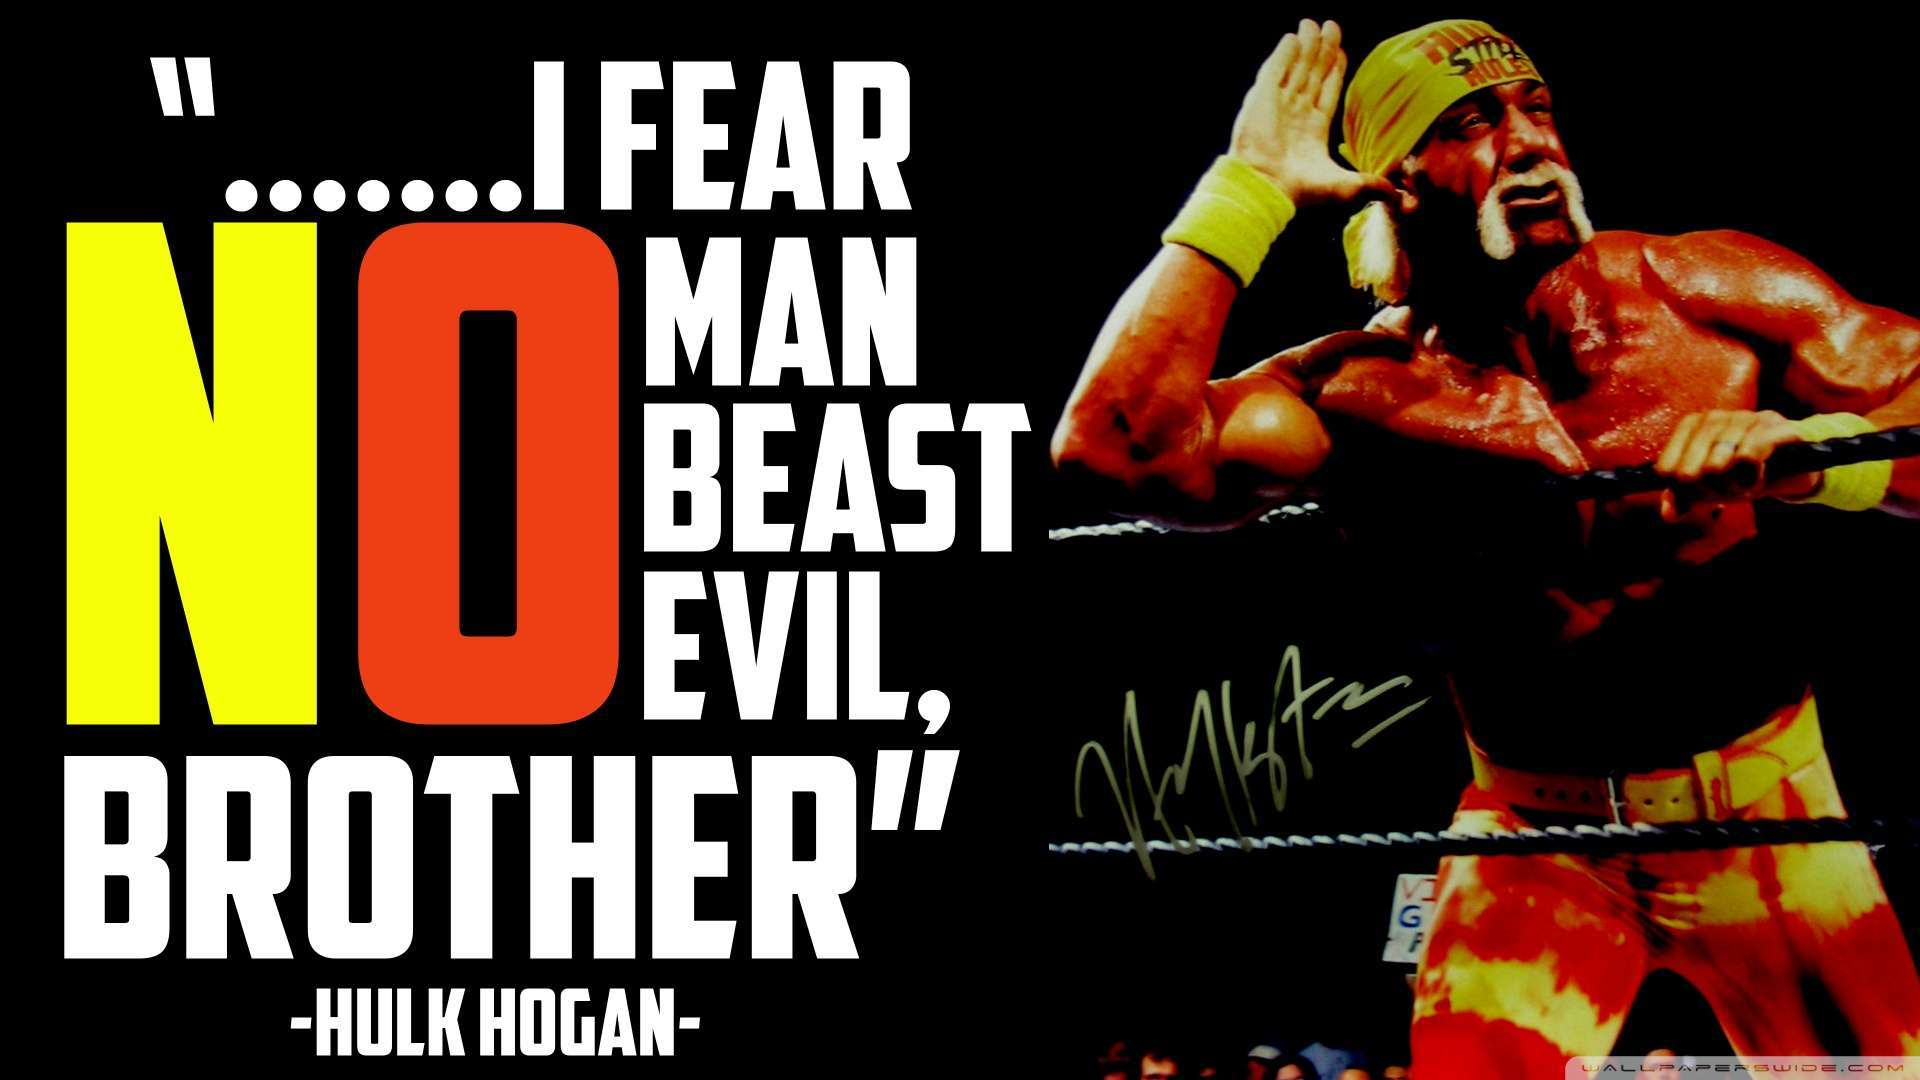 hulk hogan wallpapers - photo #13